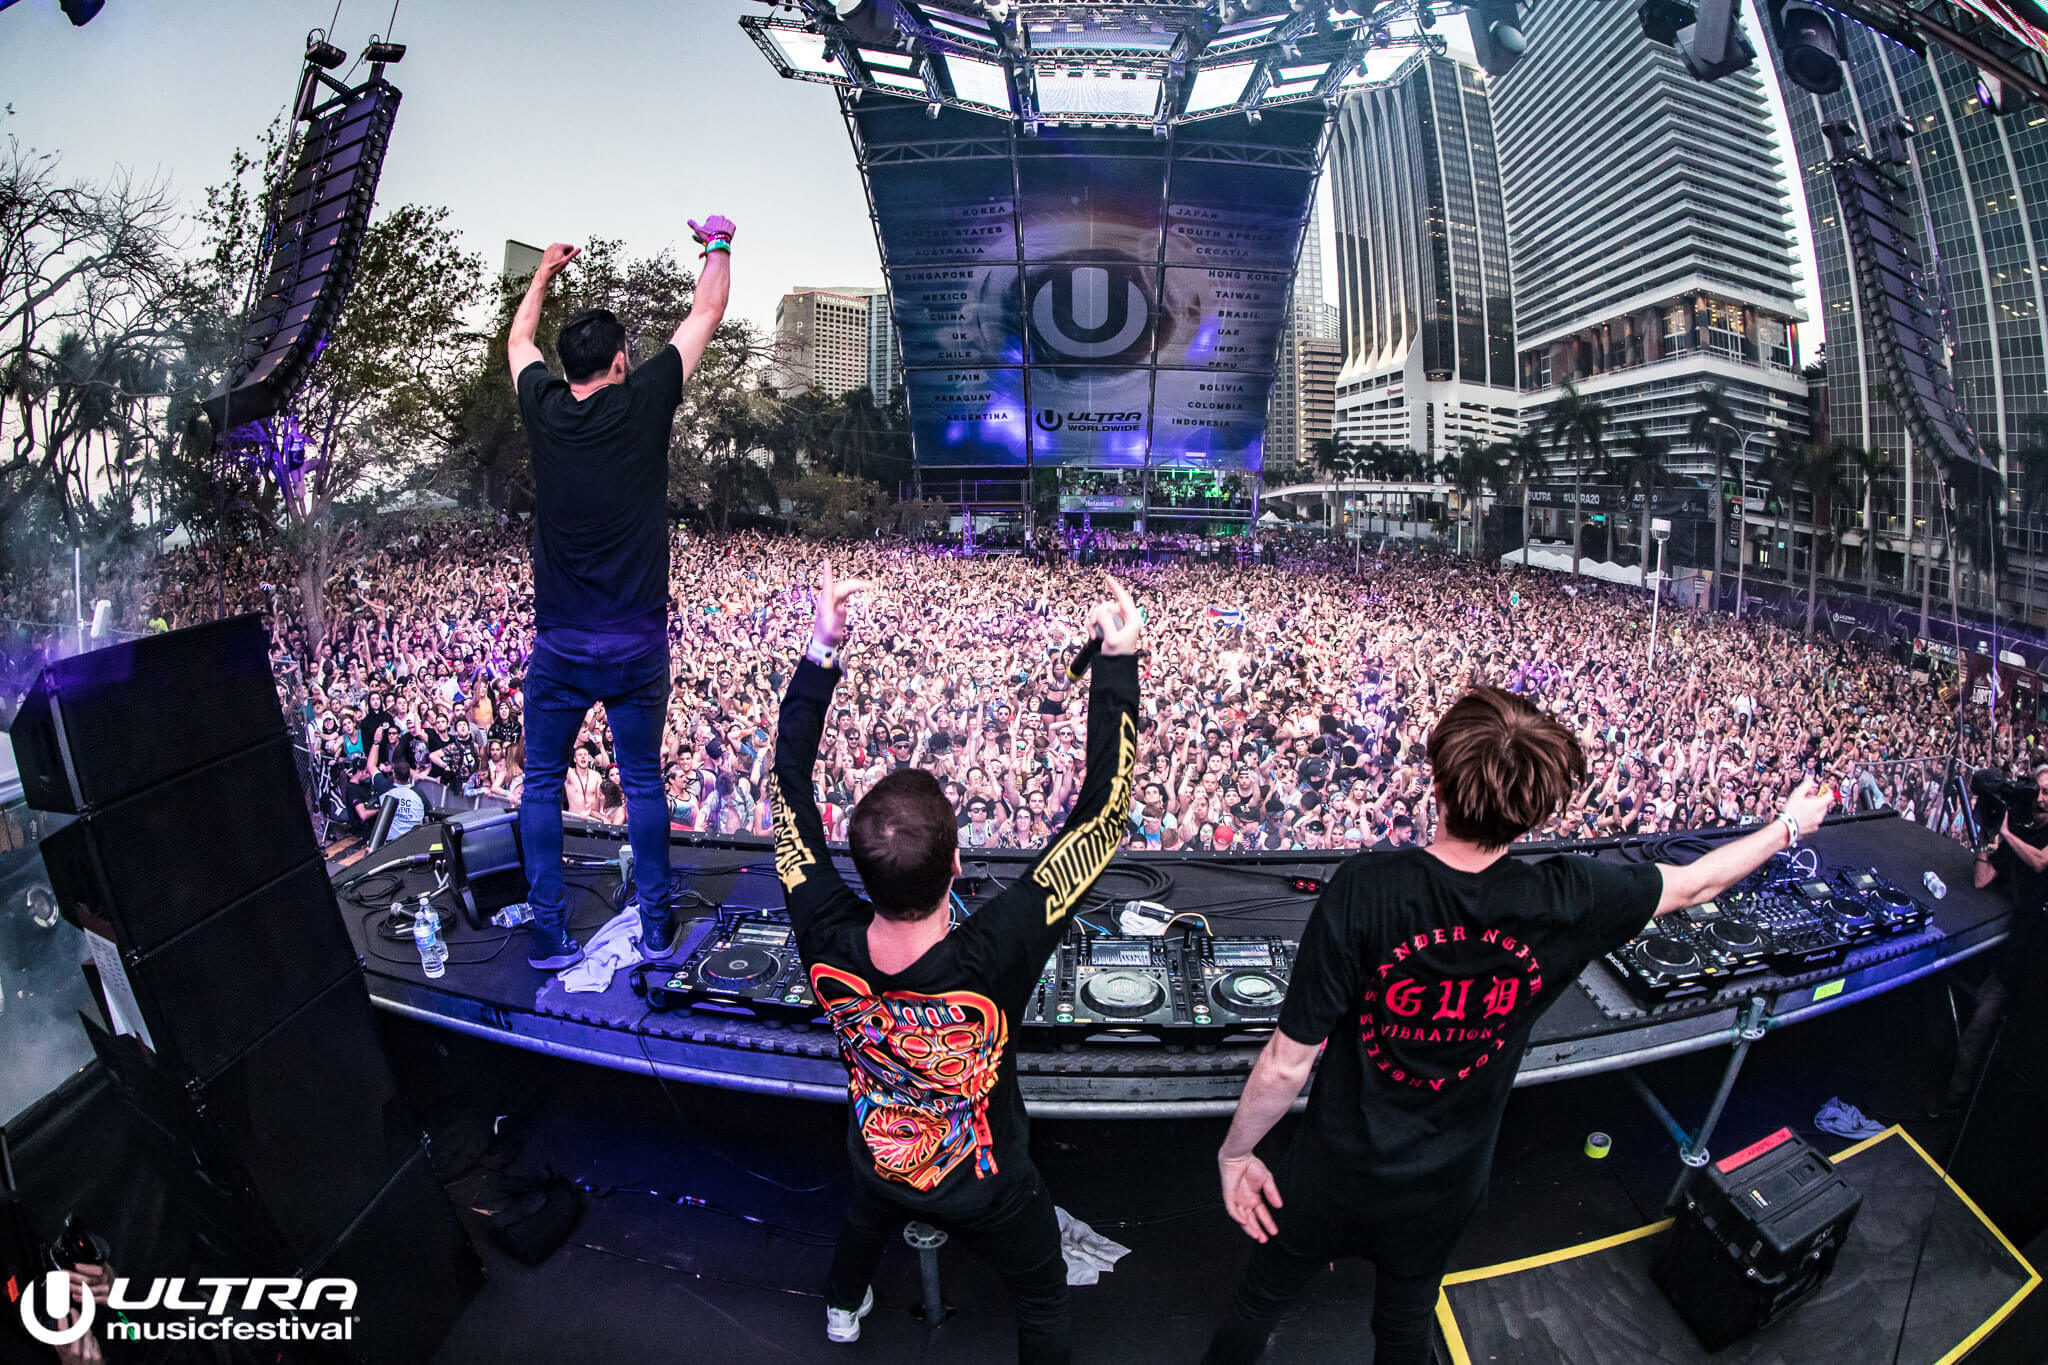 Gud Vibrations Curate Playlist in Anticipation of UMF Radio Stage Takeover